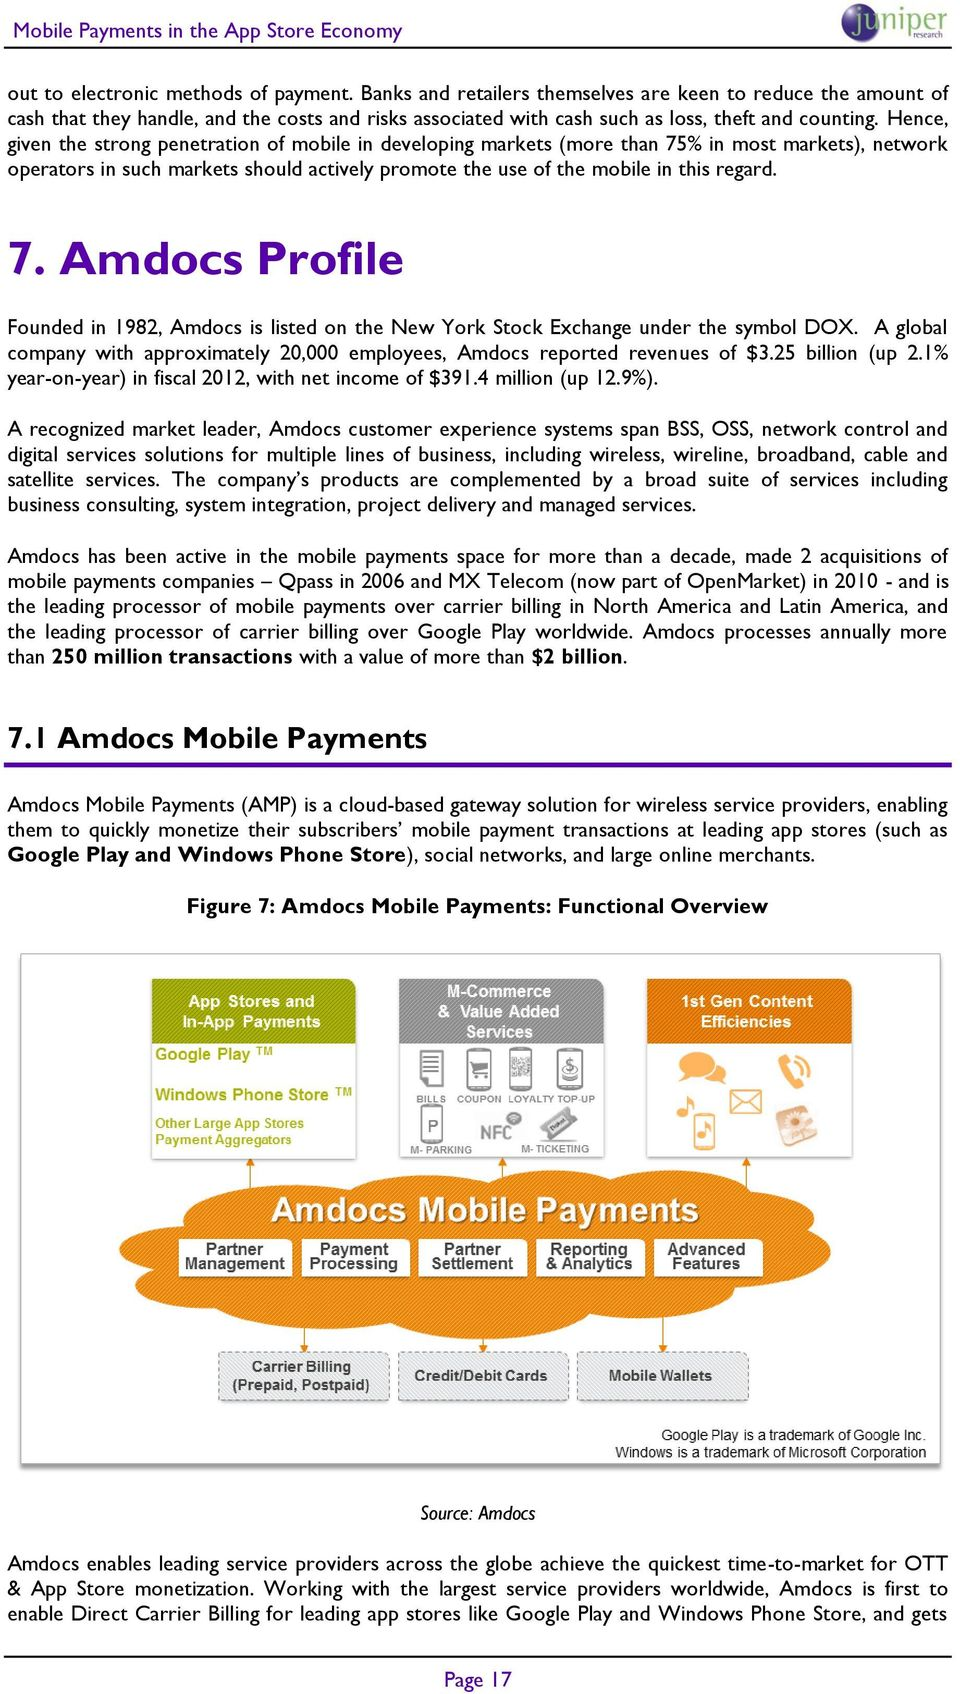 Hence, given the strong penetration of mobile in developing markets (more than 75% in most markets), network operators in such markets should actively promote the use of the mobile in this regard. 7. Amdocs Profile Founded in 1982, Amdocs is listed on the New York Stock Exchange under the symbol DOX.